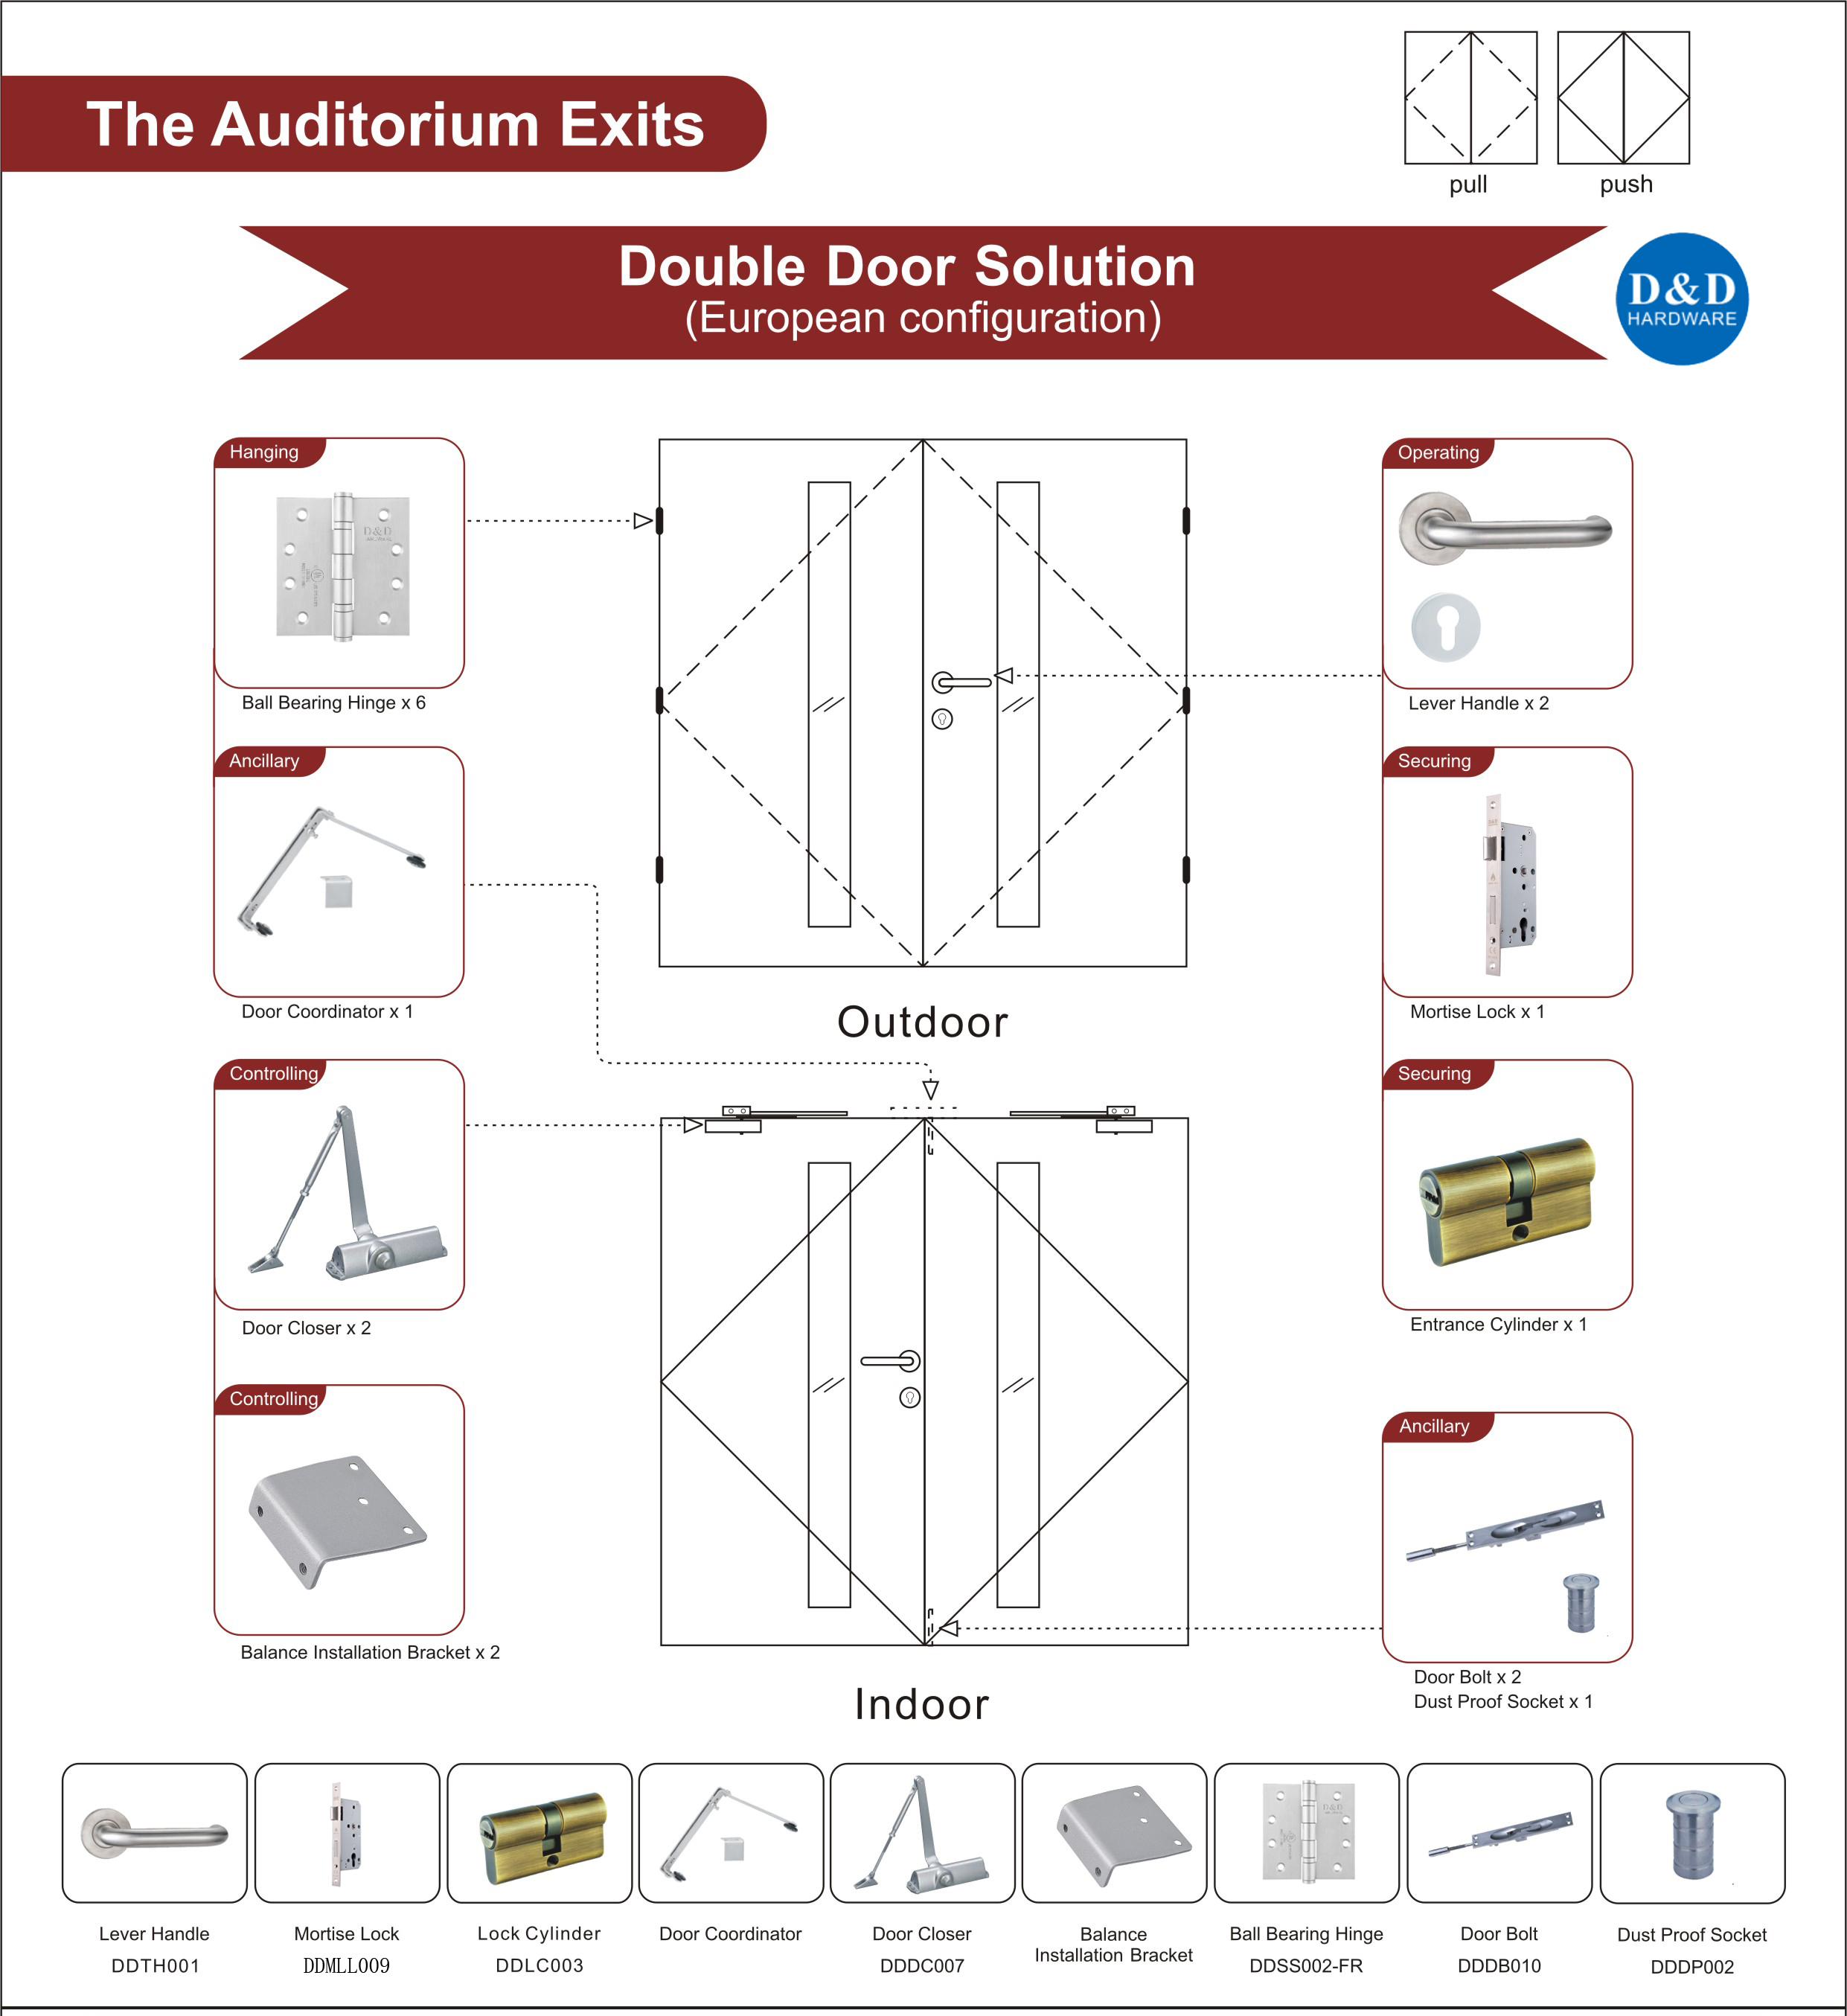 Steel Fire Rated Door Hardware for Auditorium Exits Double Door